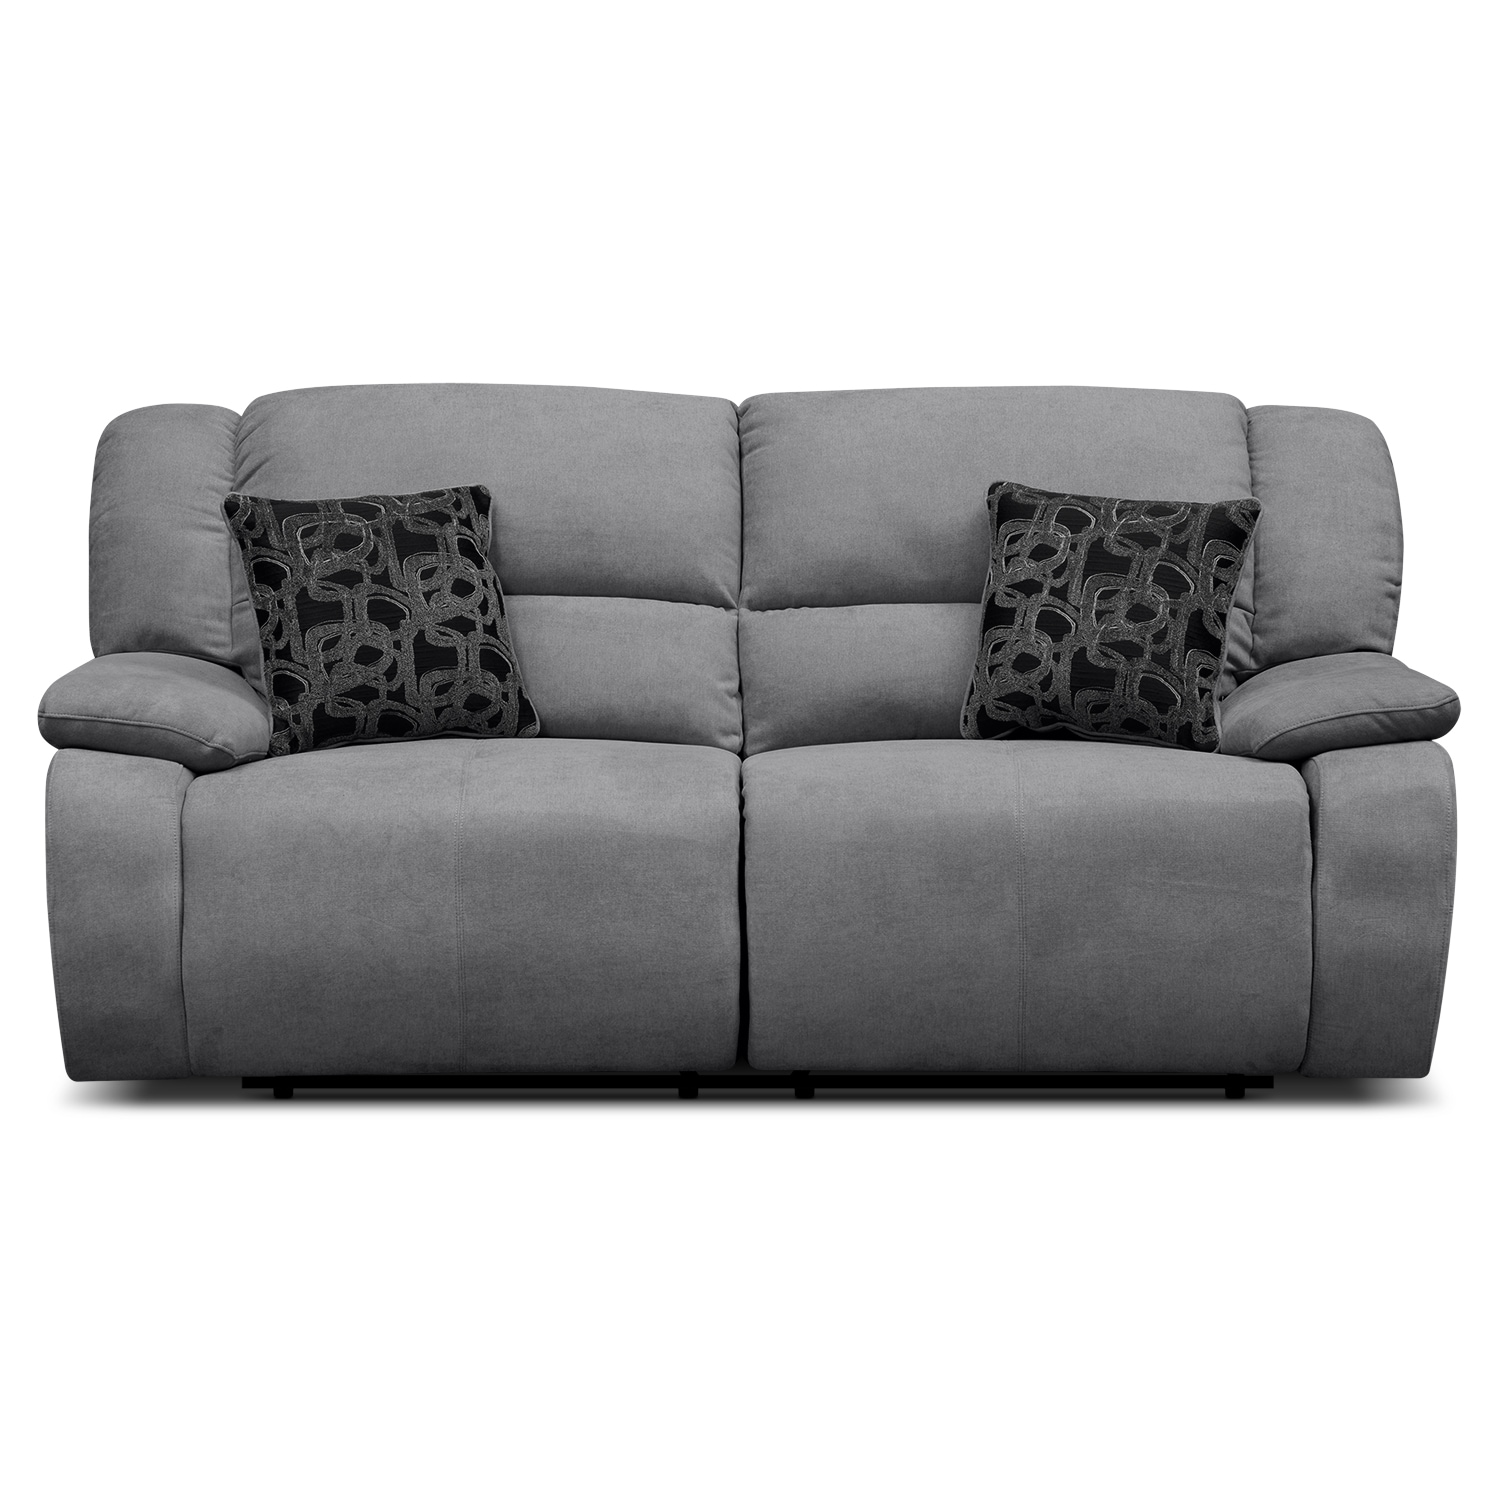 Fortuna gray power reclining sofa for Grey sofa and chair